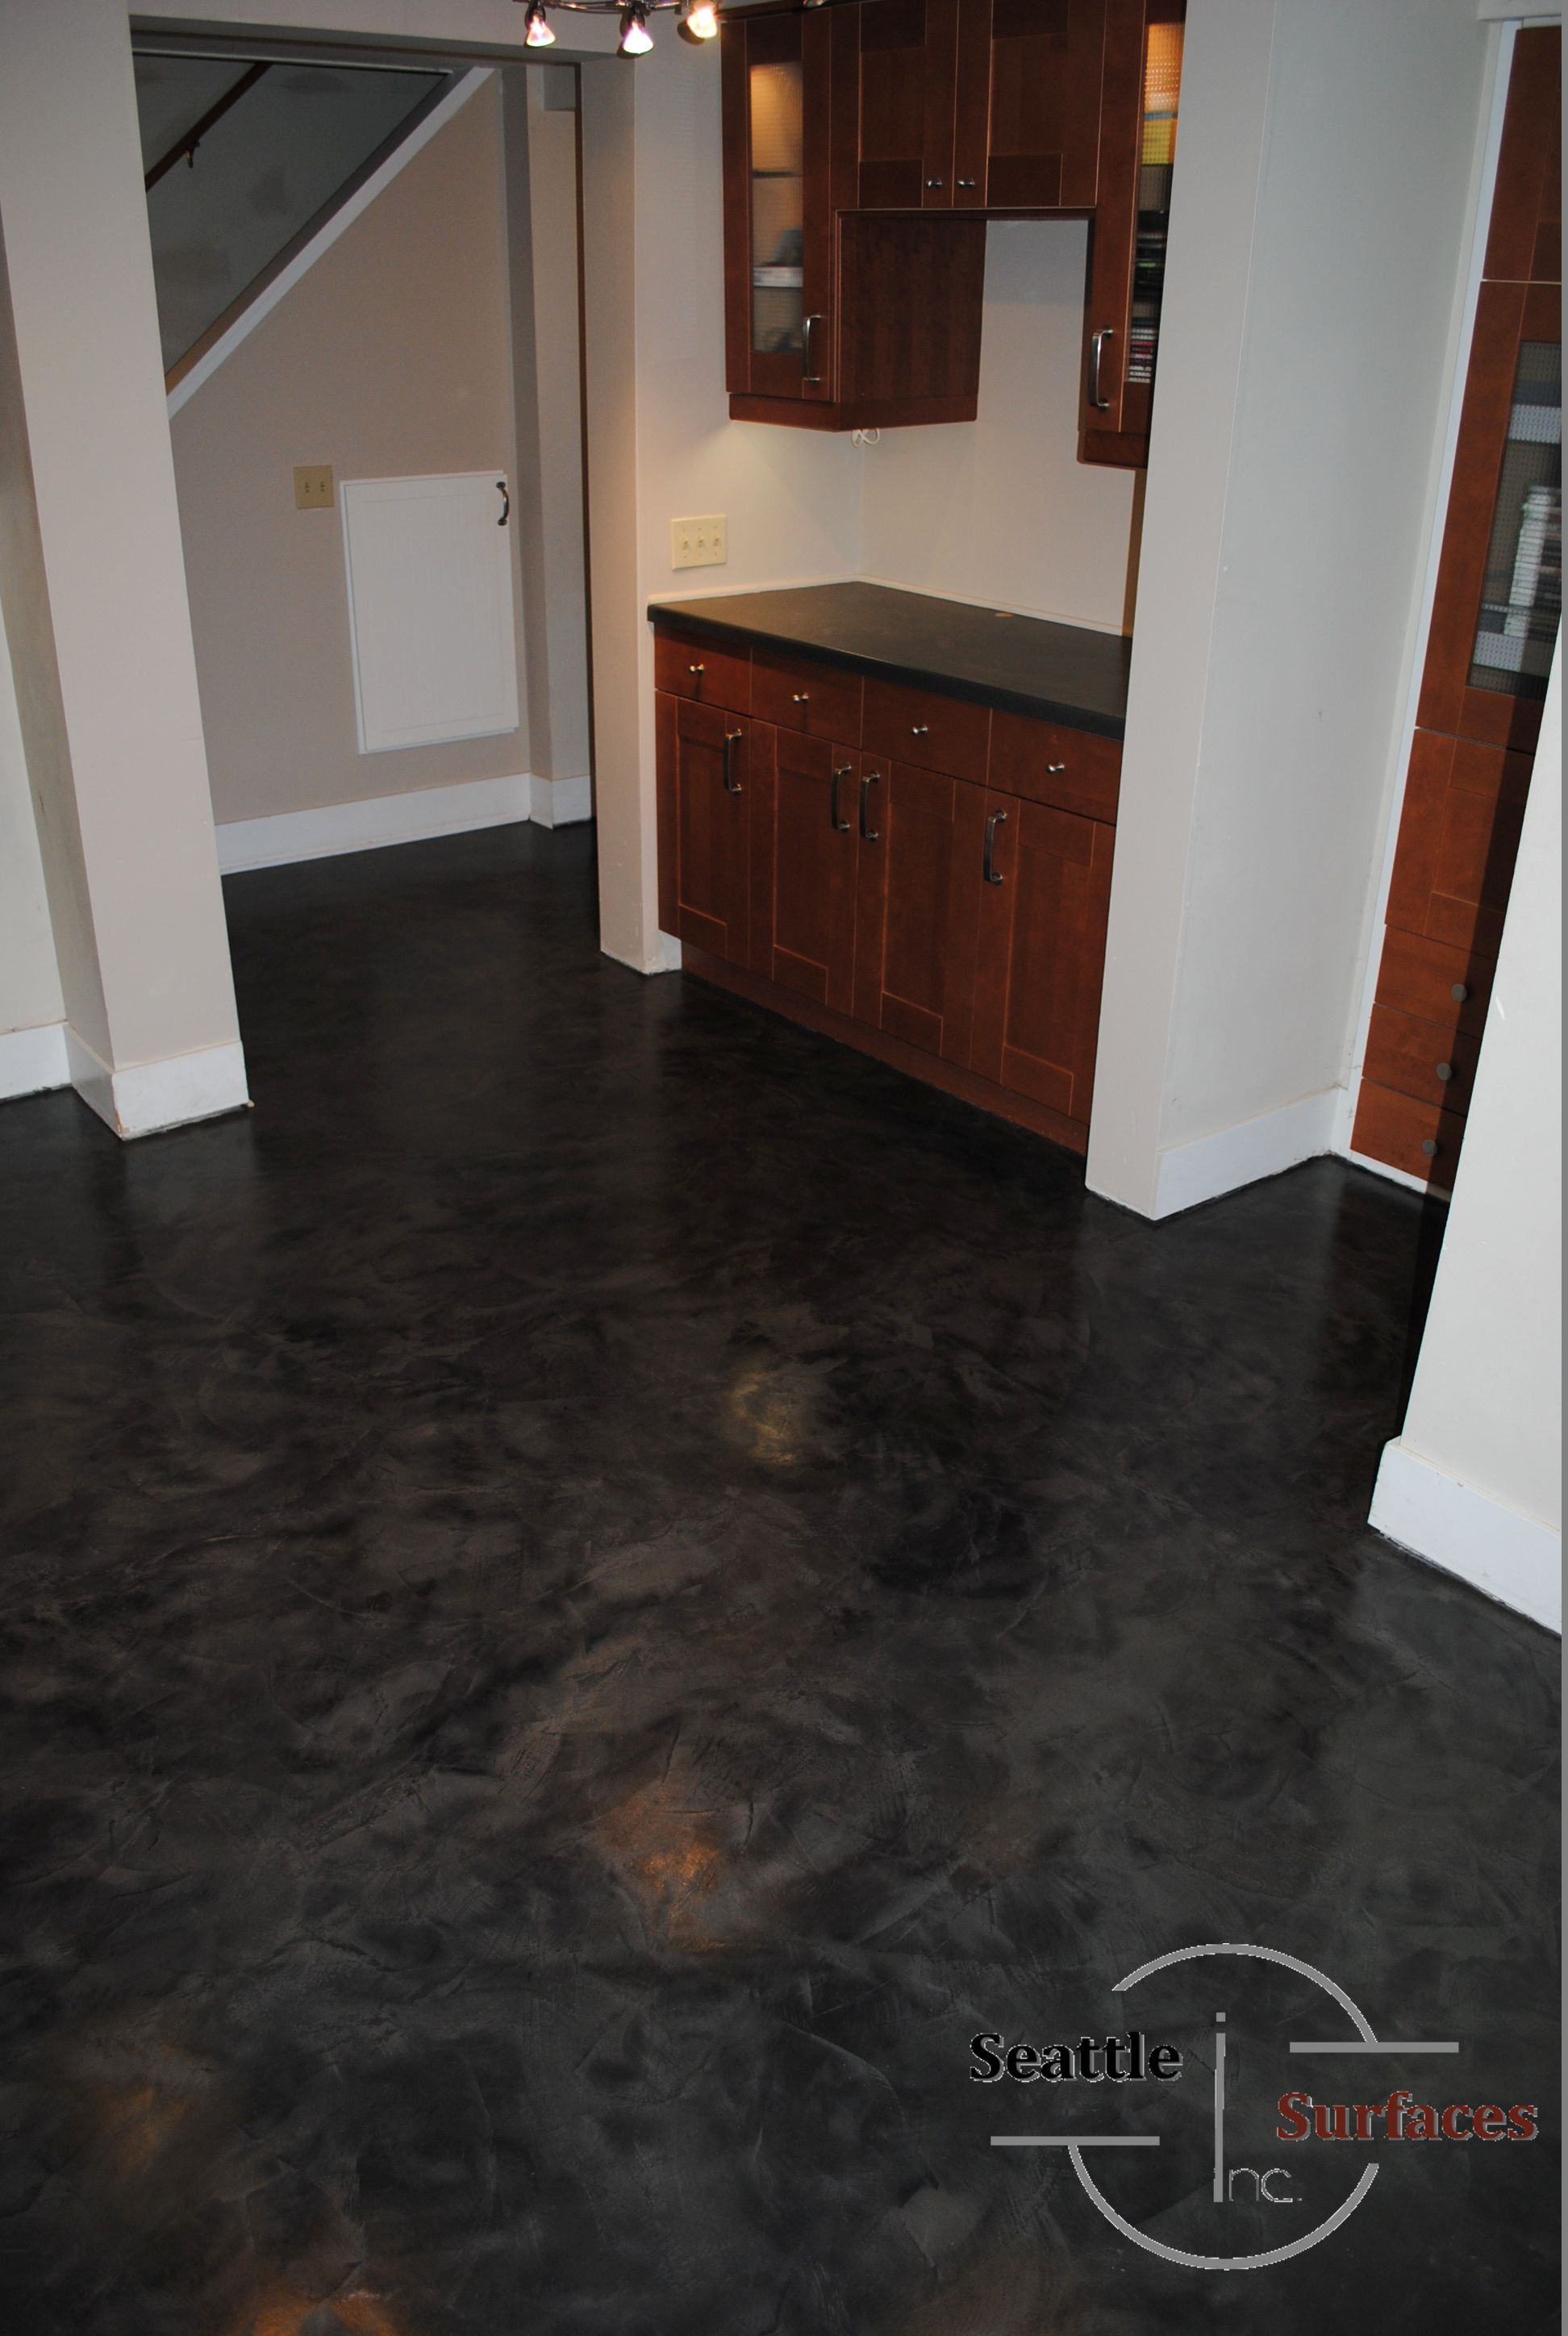 Skimstone Concrete Micro Topping In Basement After Carpet